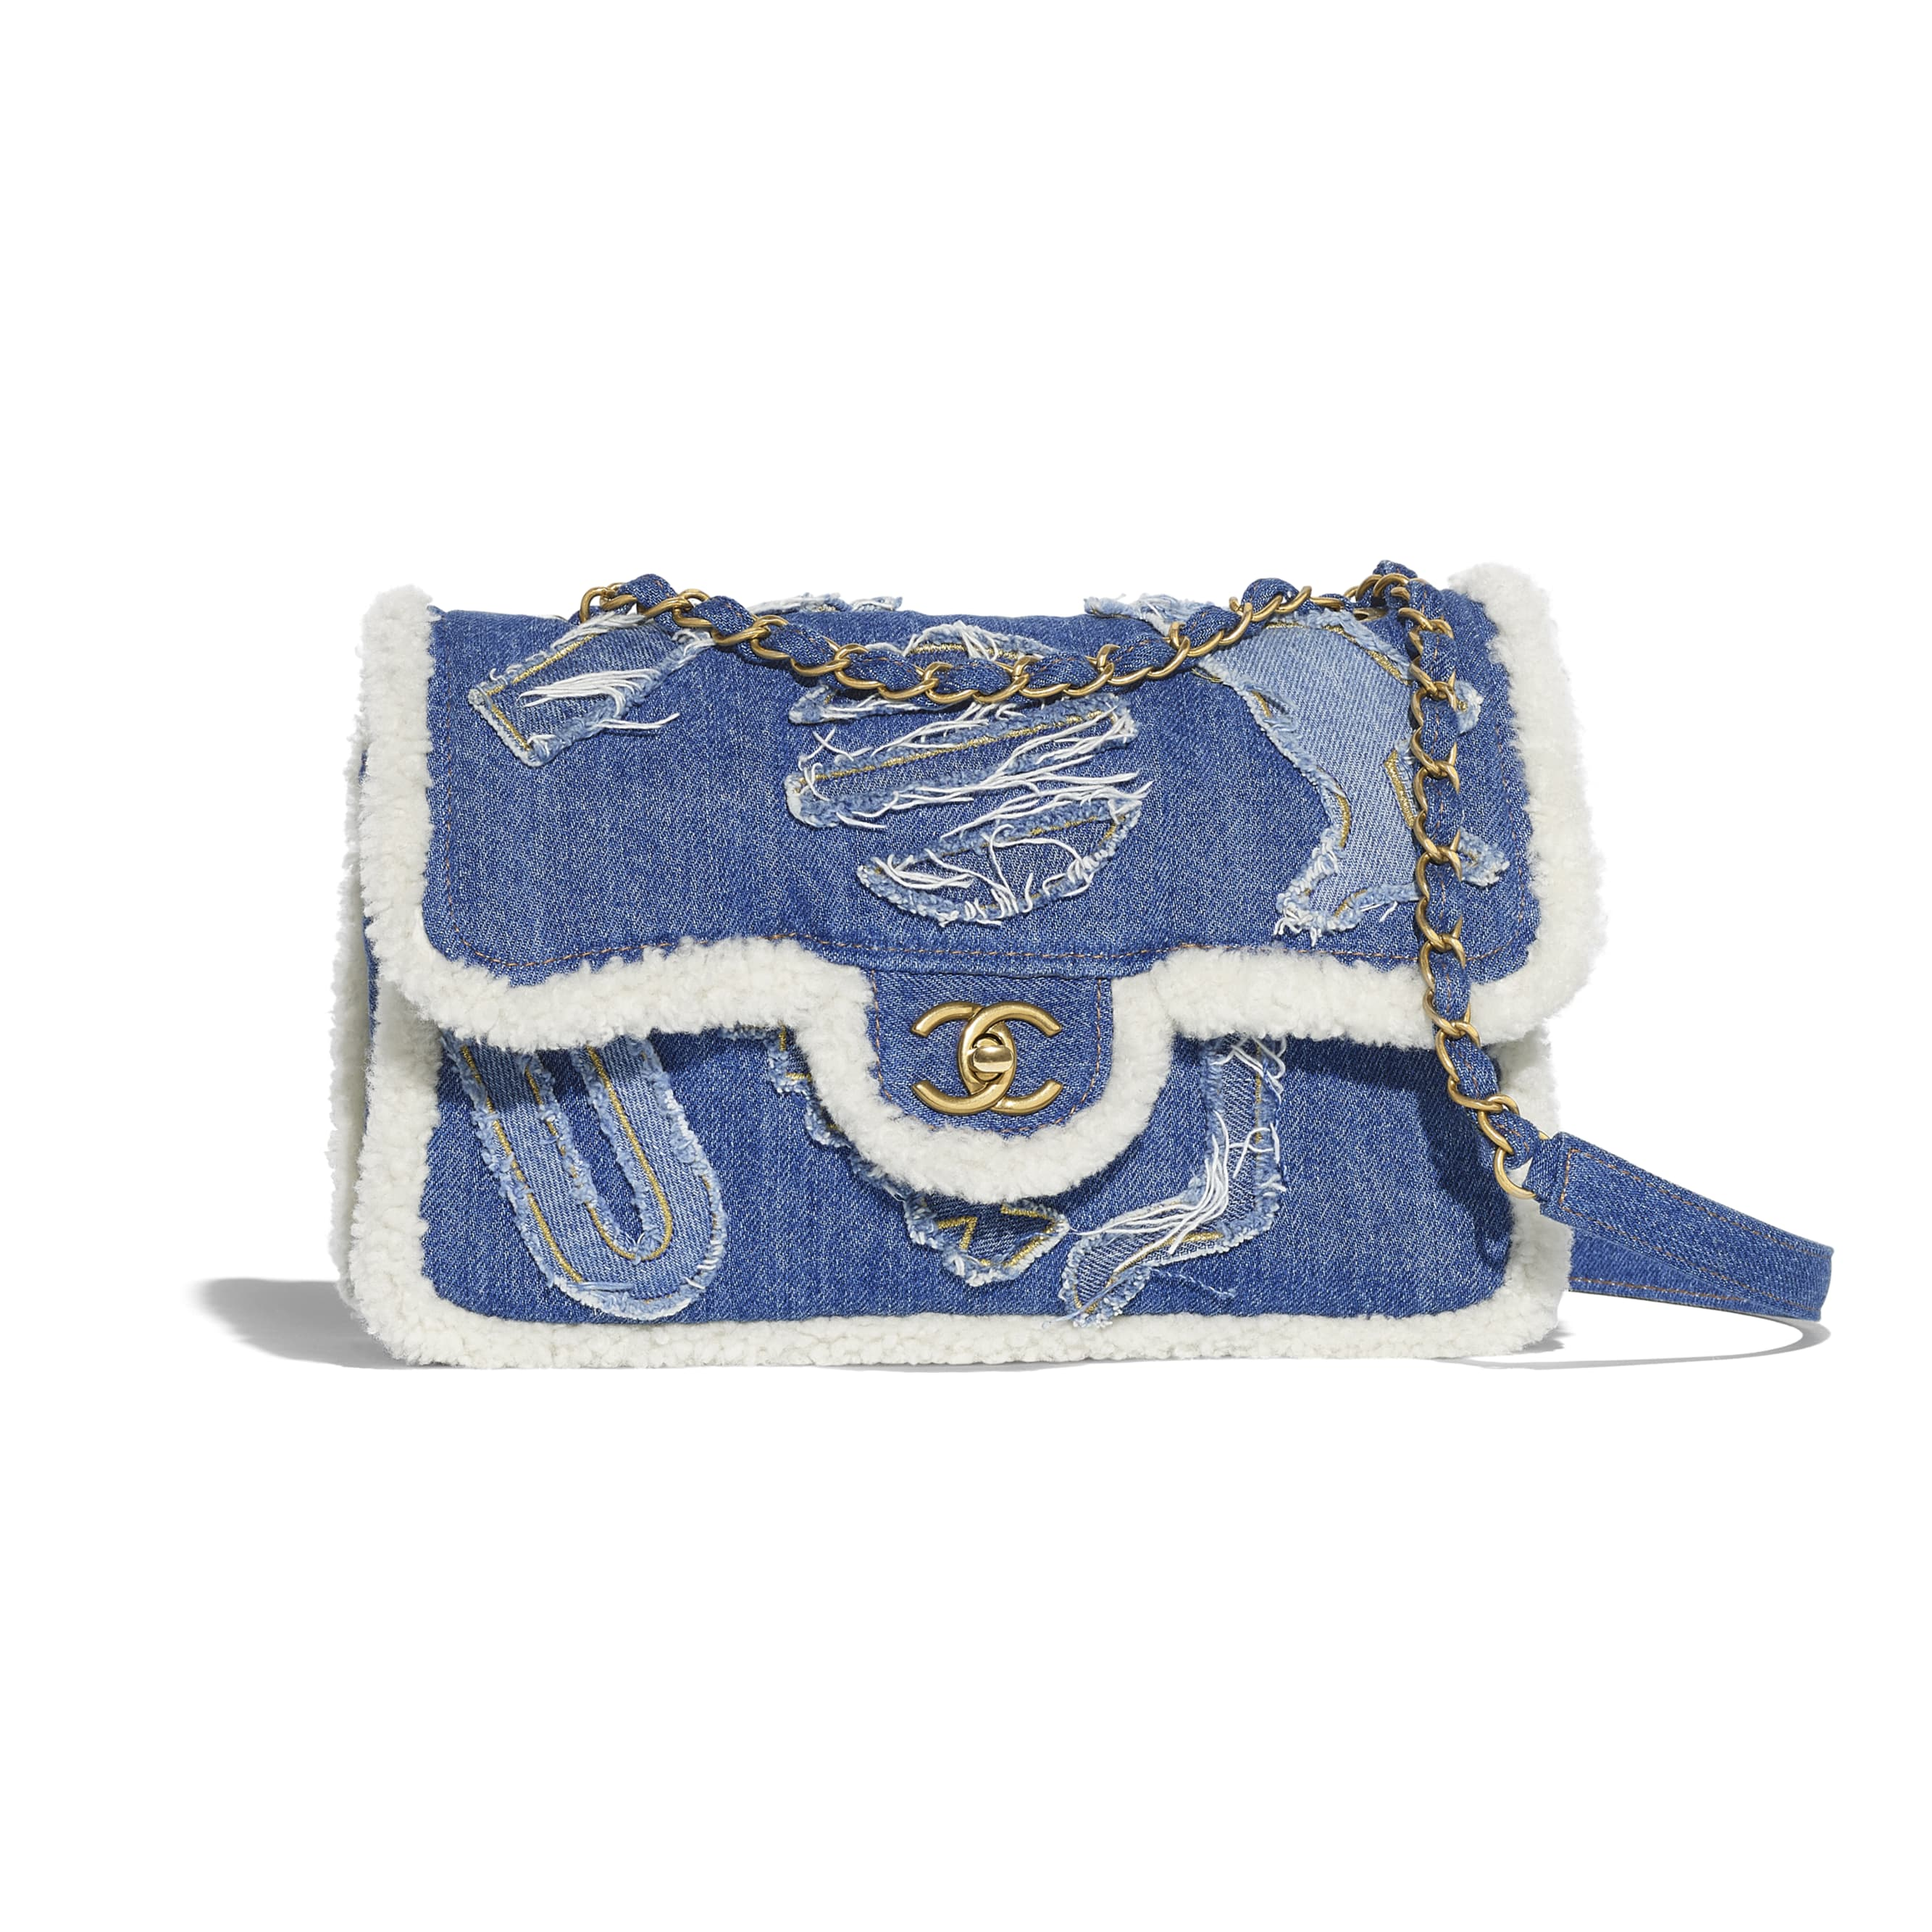 Flap Bag - Light Blue - Cotton, Shearling Sheepskin & Gold-Tone Metal - Default view - see standard sized version